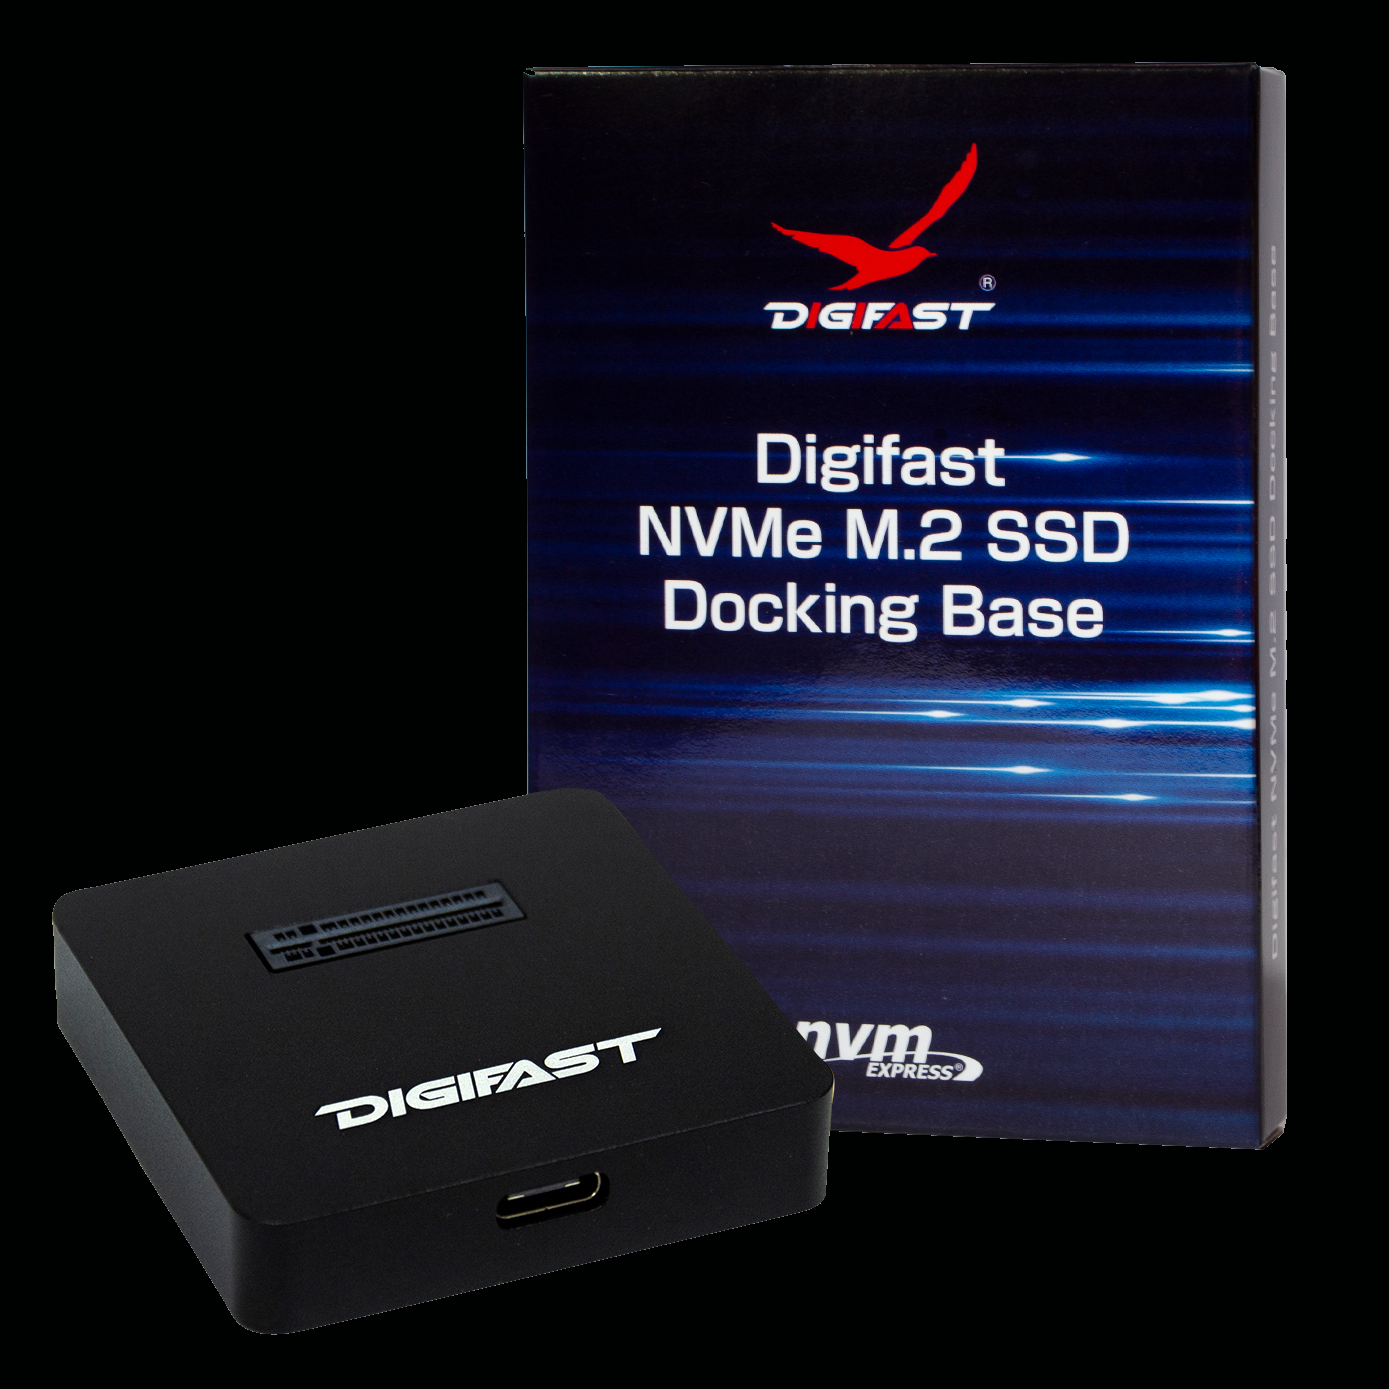 M.2 Docking Base - Digifast M.2 NVMe SSD Docking Base, USB3.1 GEN2 Type-C (10 Gbps) - Black